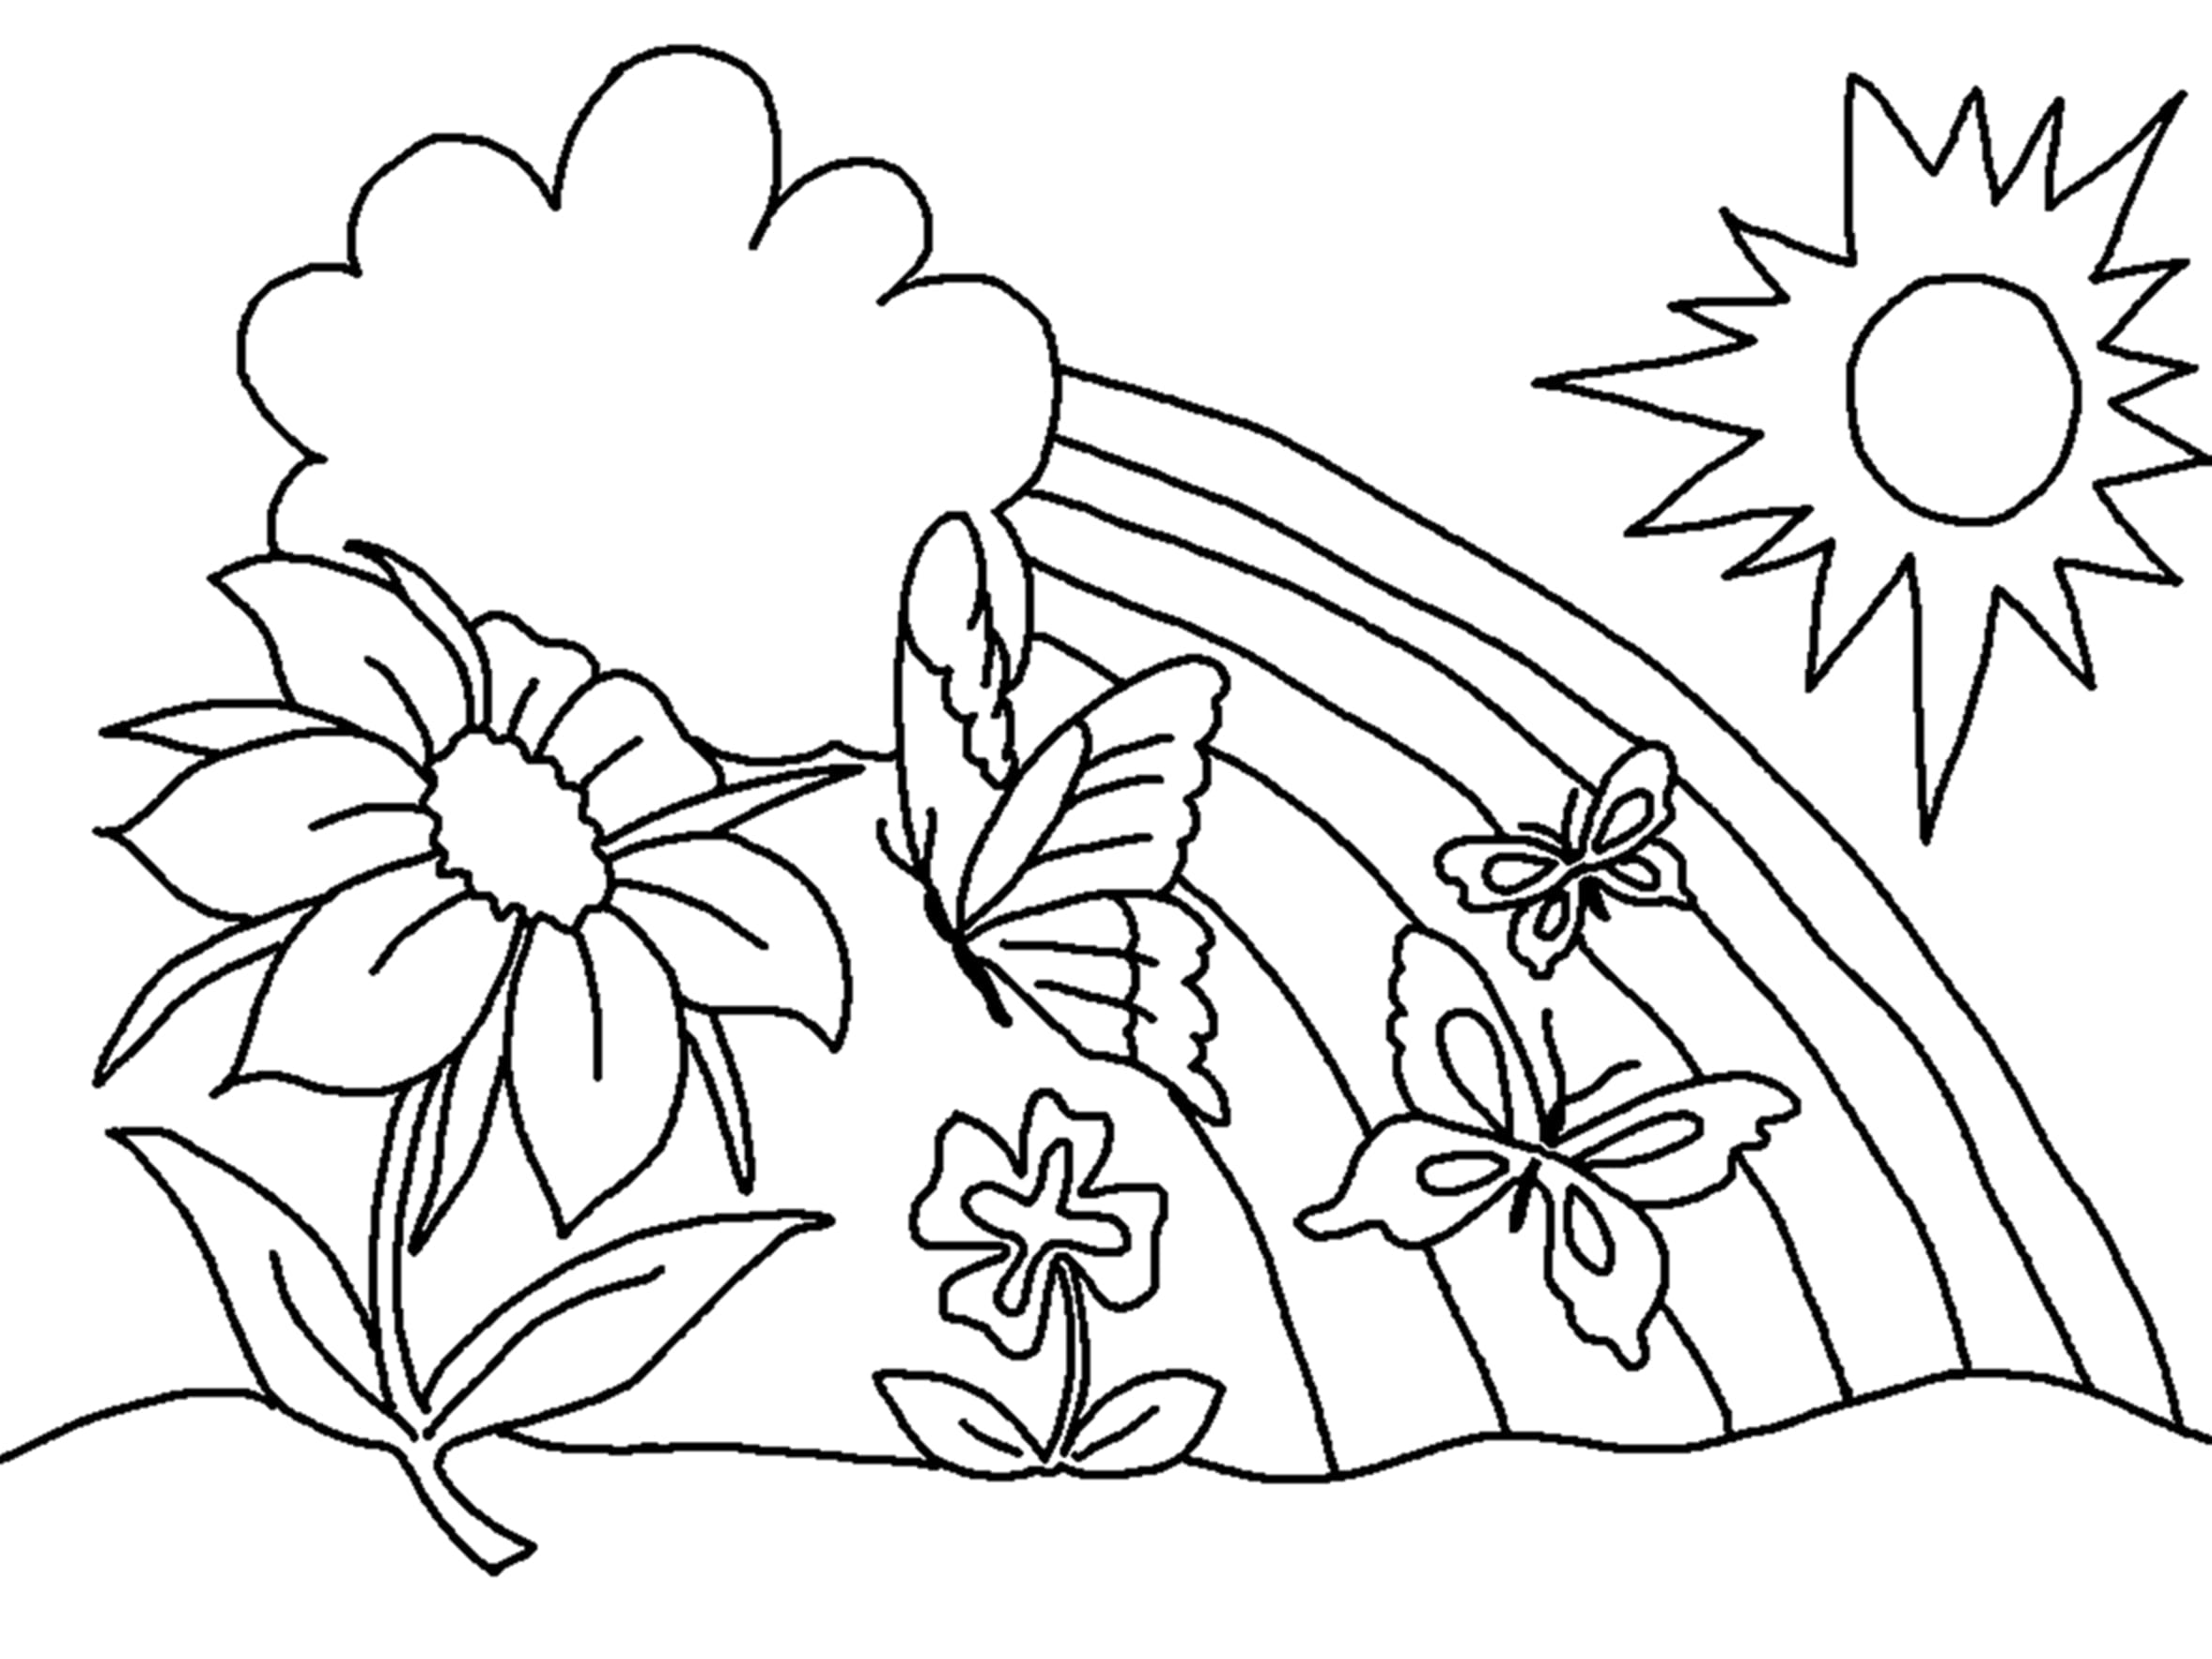 Noted Free Coloring Pages Flowers Printable Flower For Kids Best